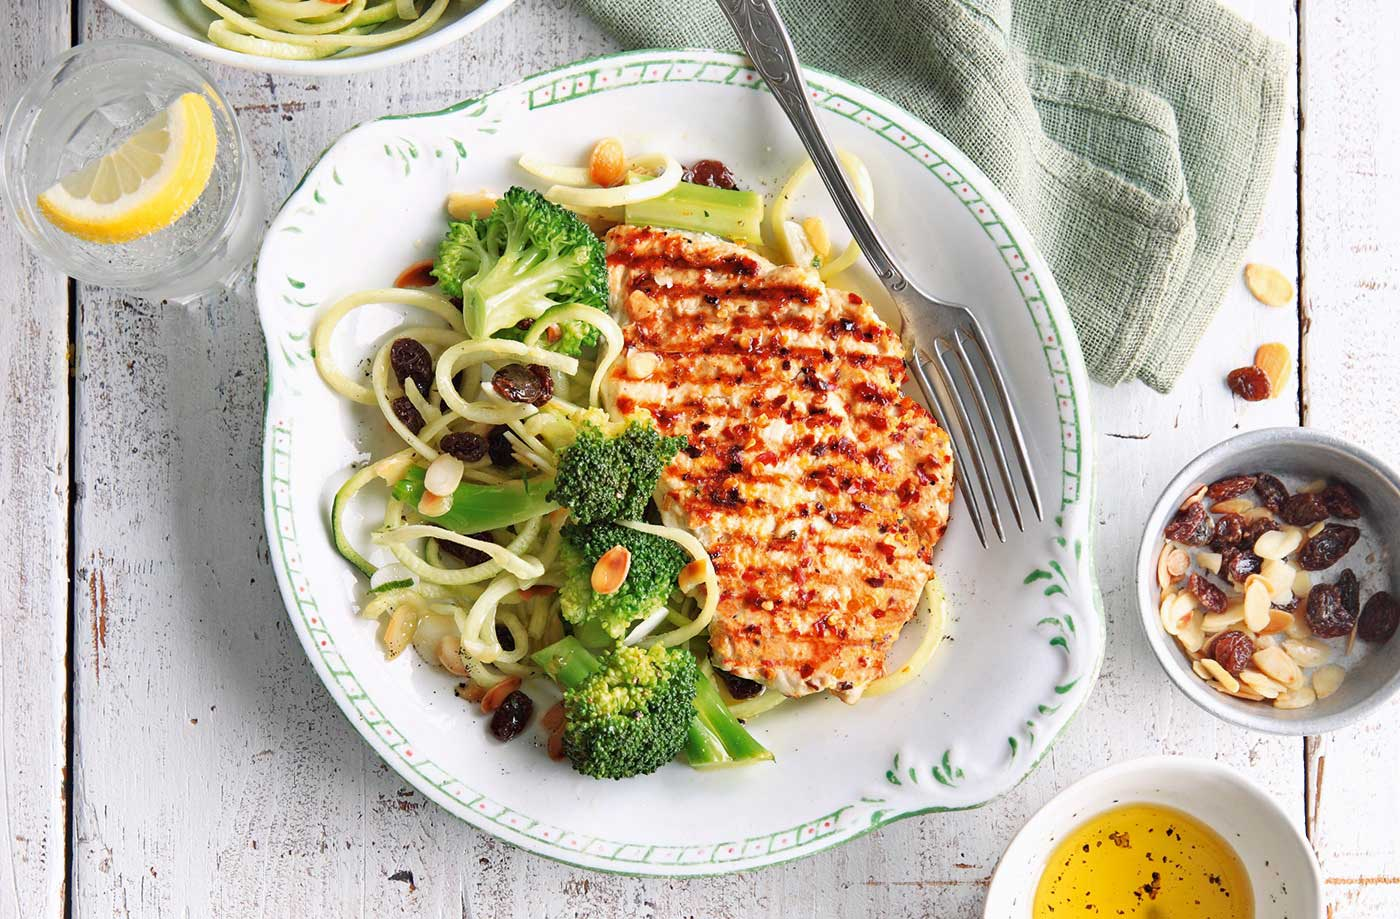 Griddled chicken with almond courgetti recipe